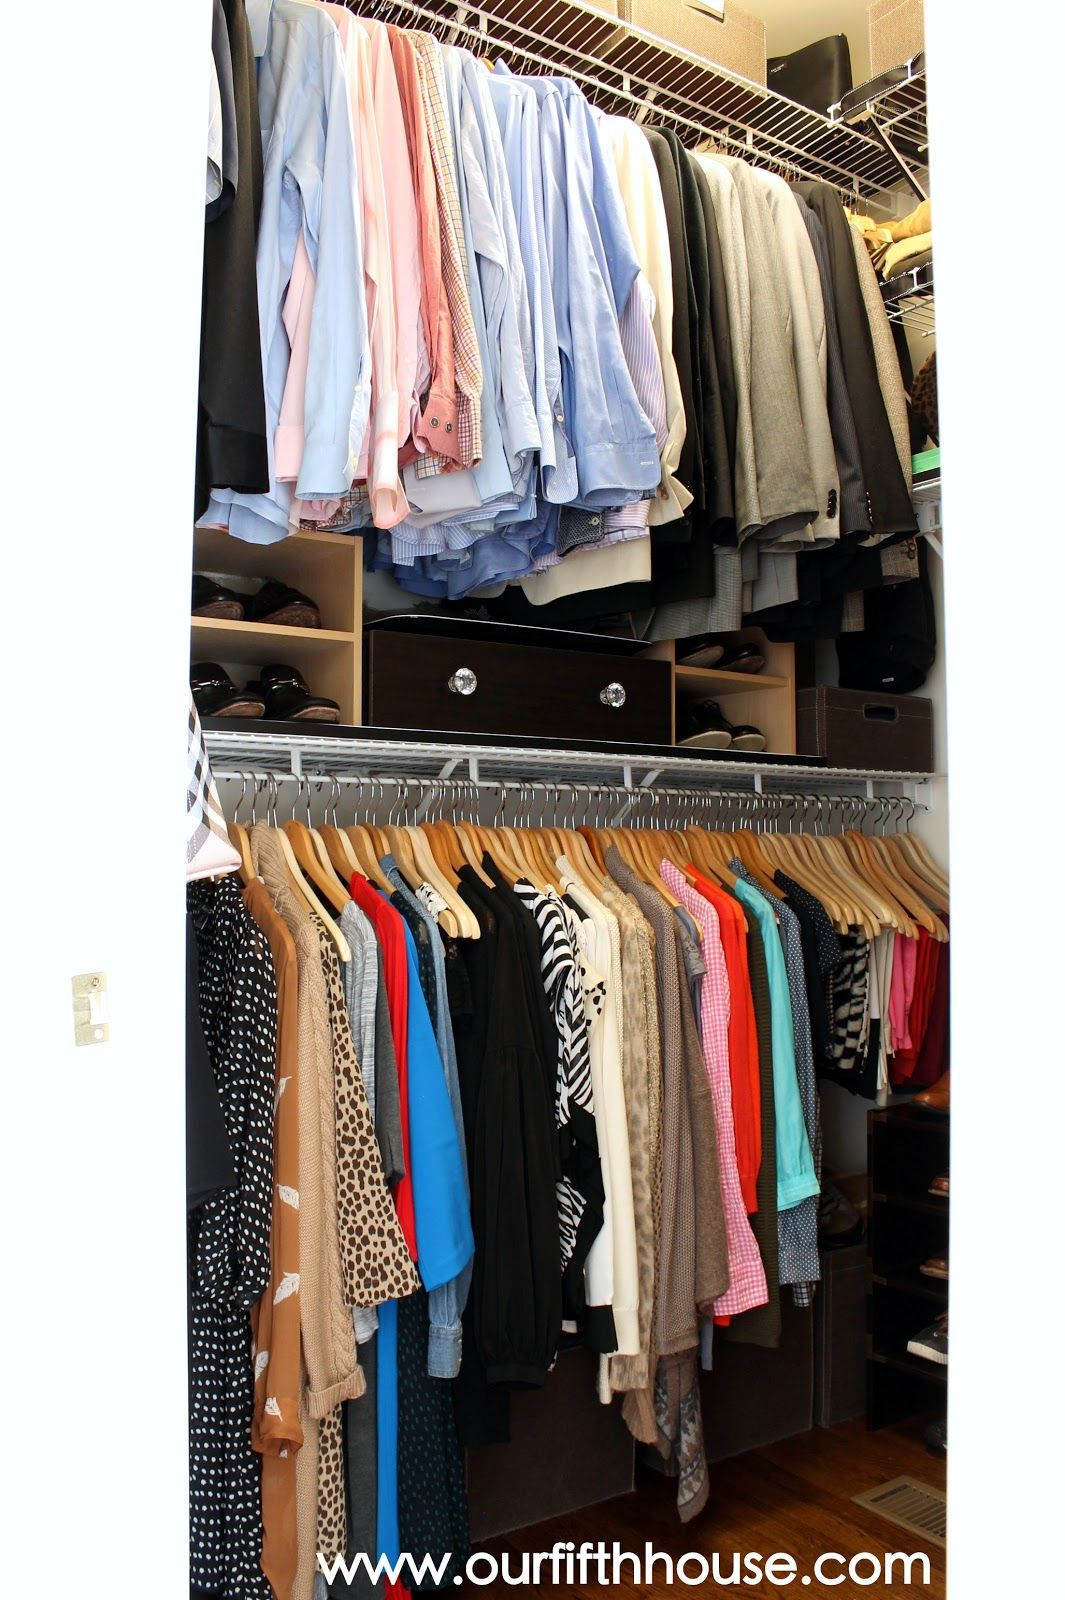 Our fifth house thinking outside the closet clothing storage ideas